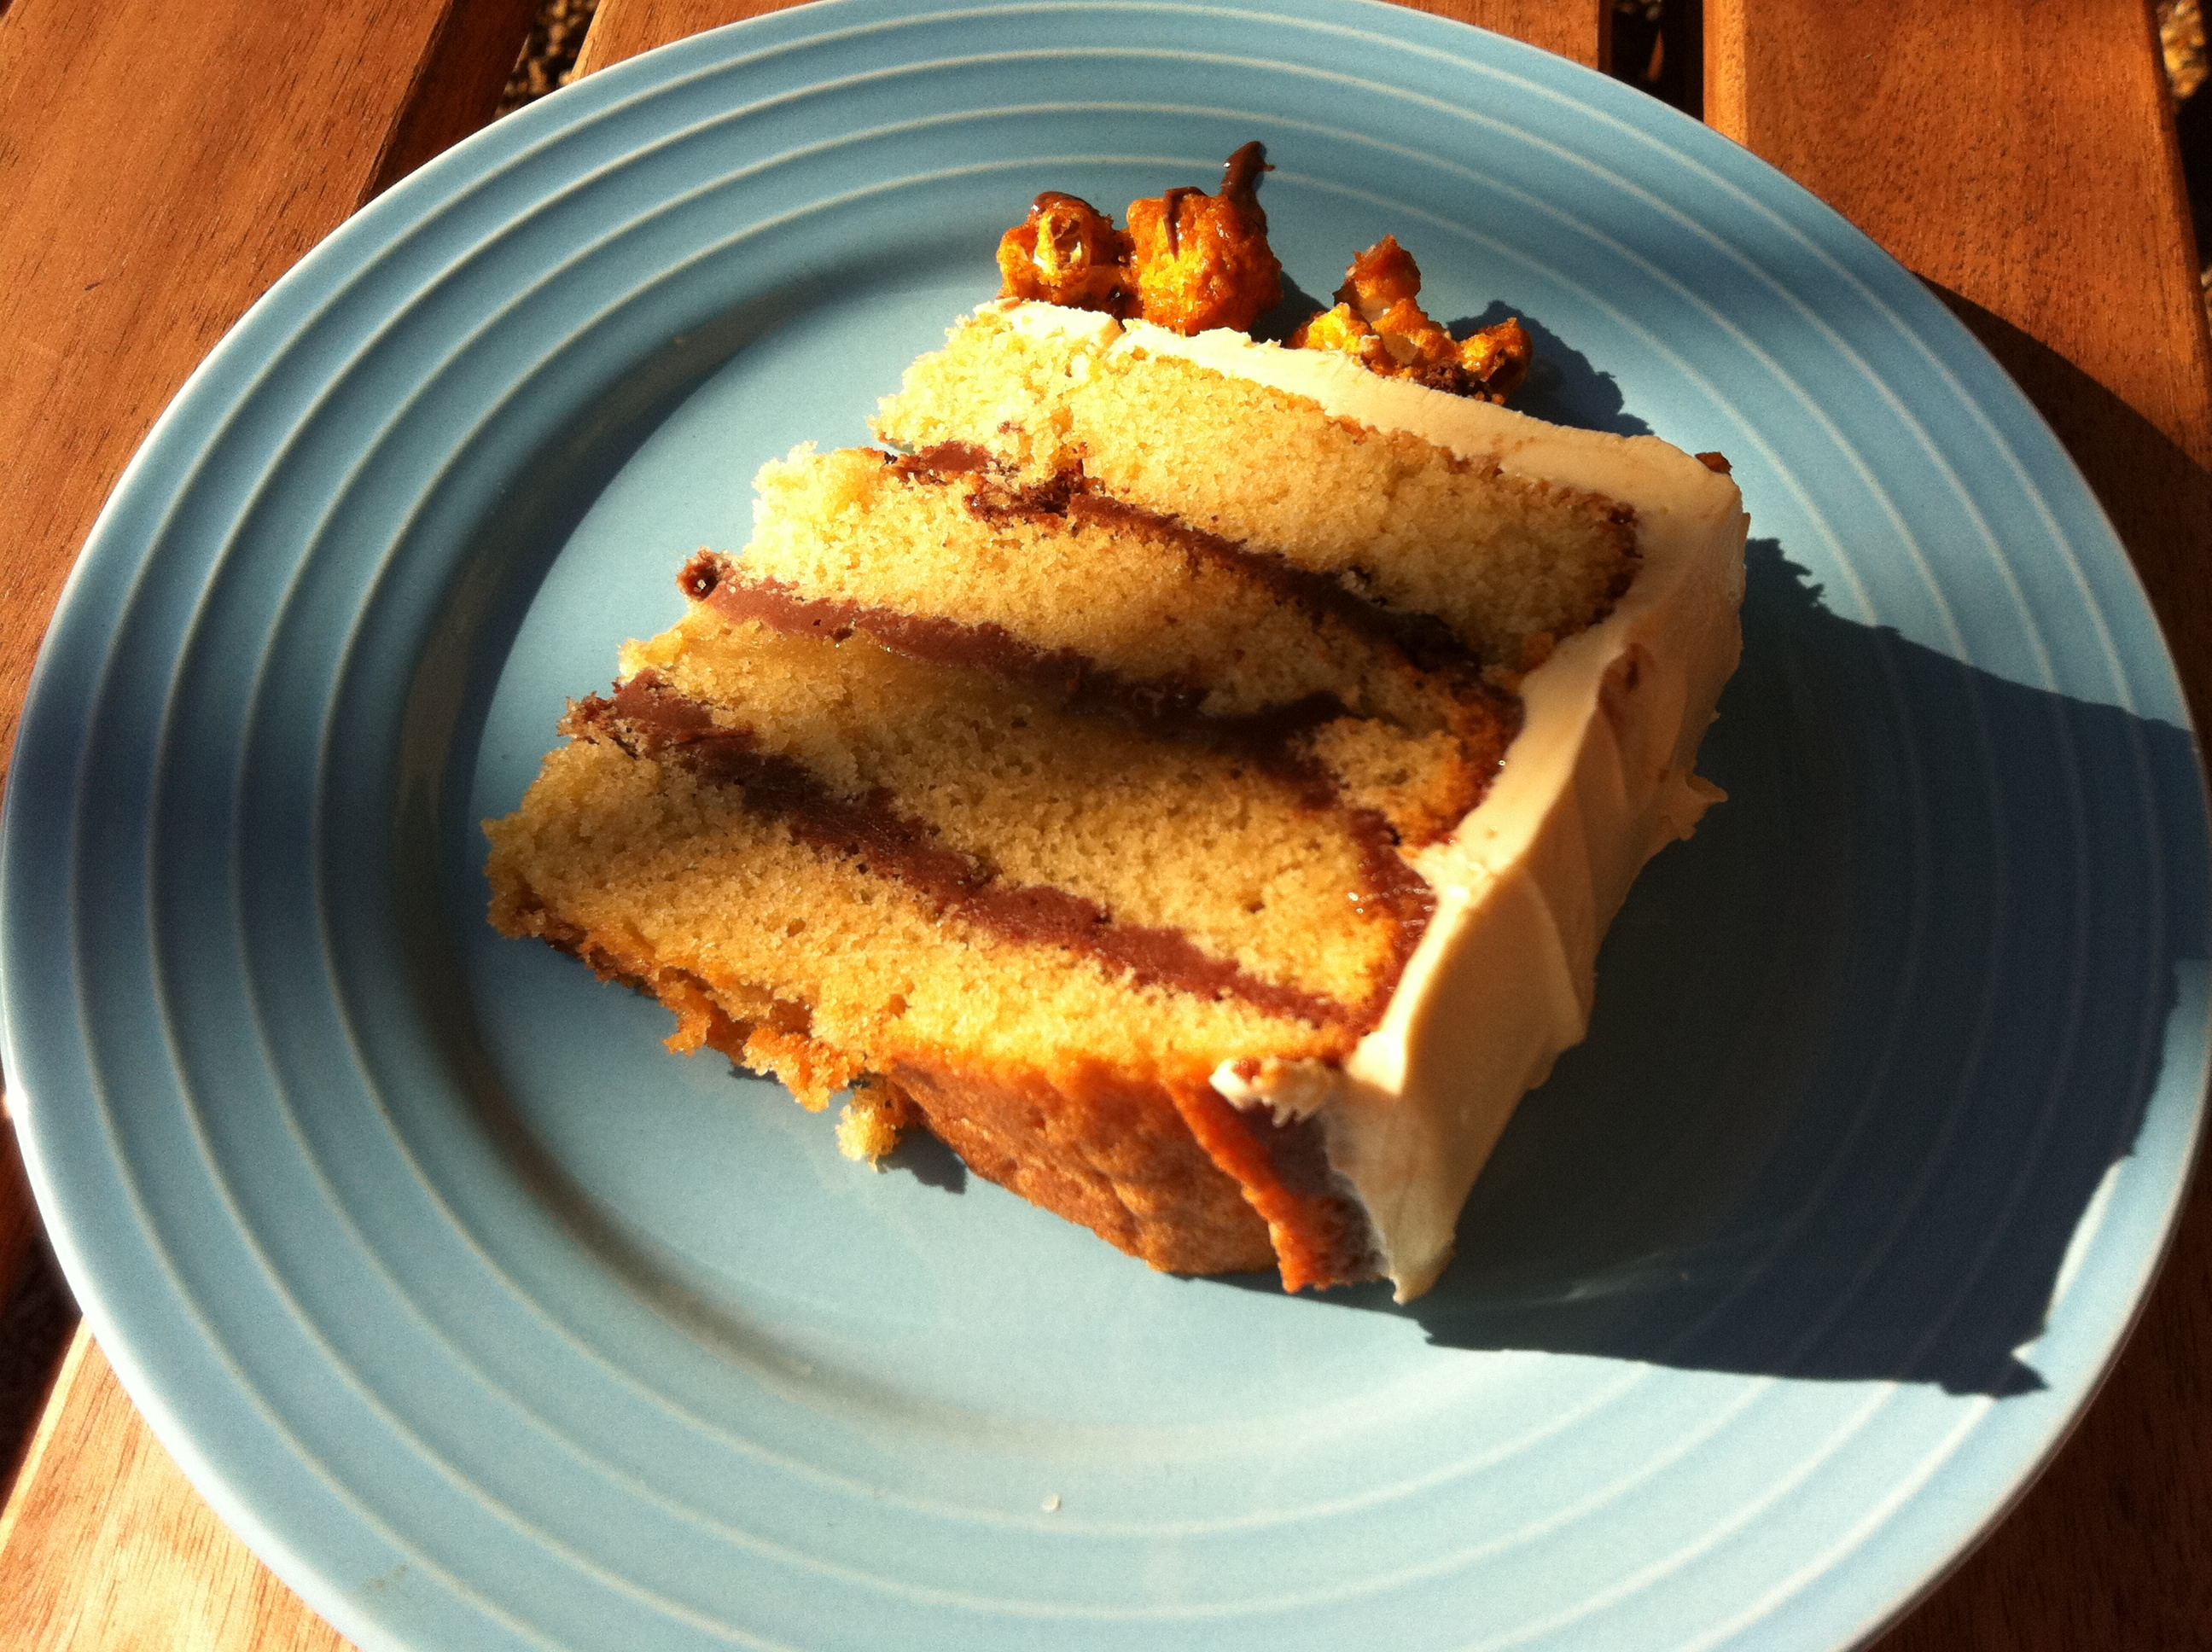 Recipe for toffee sponge cake